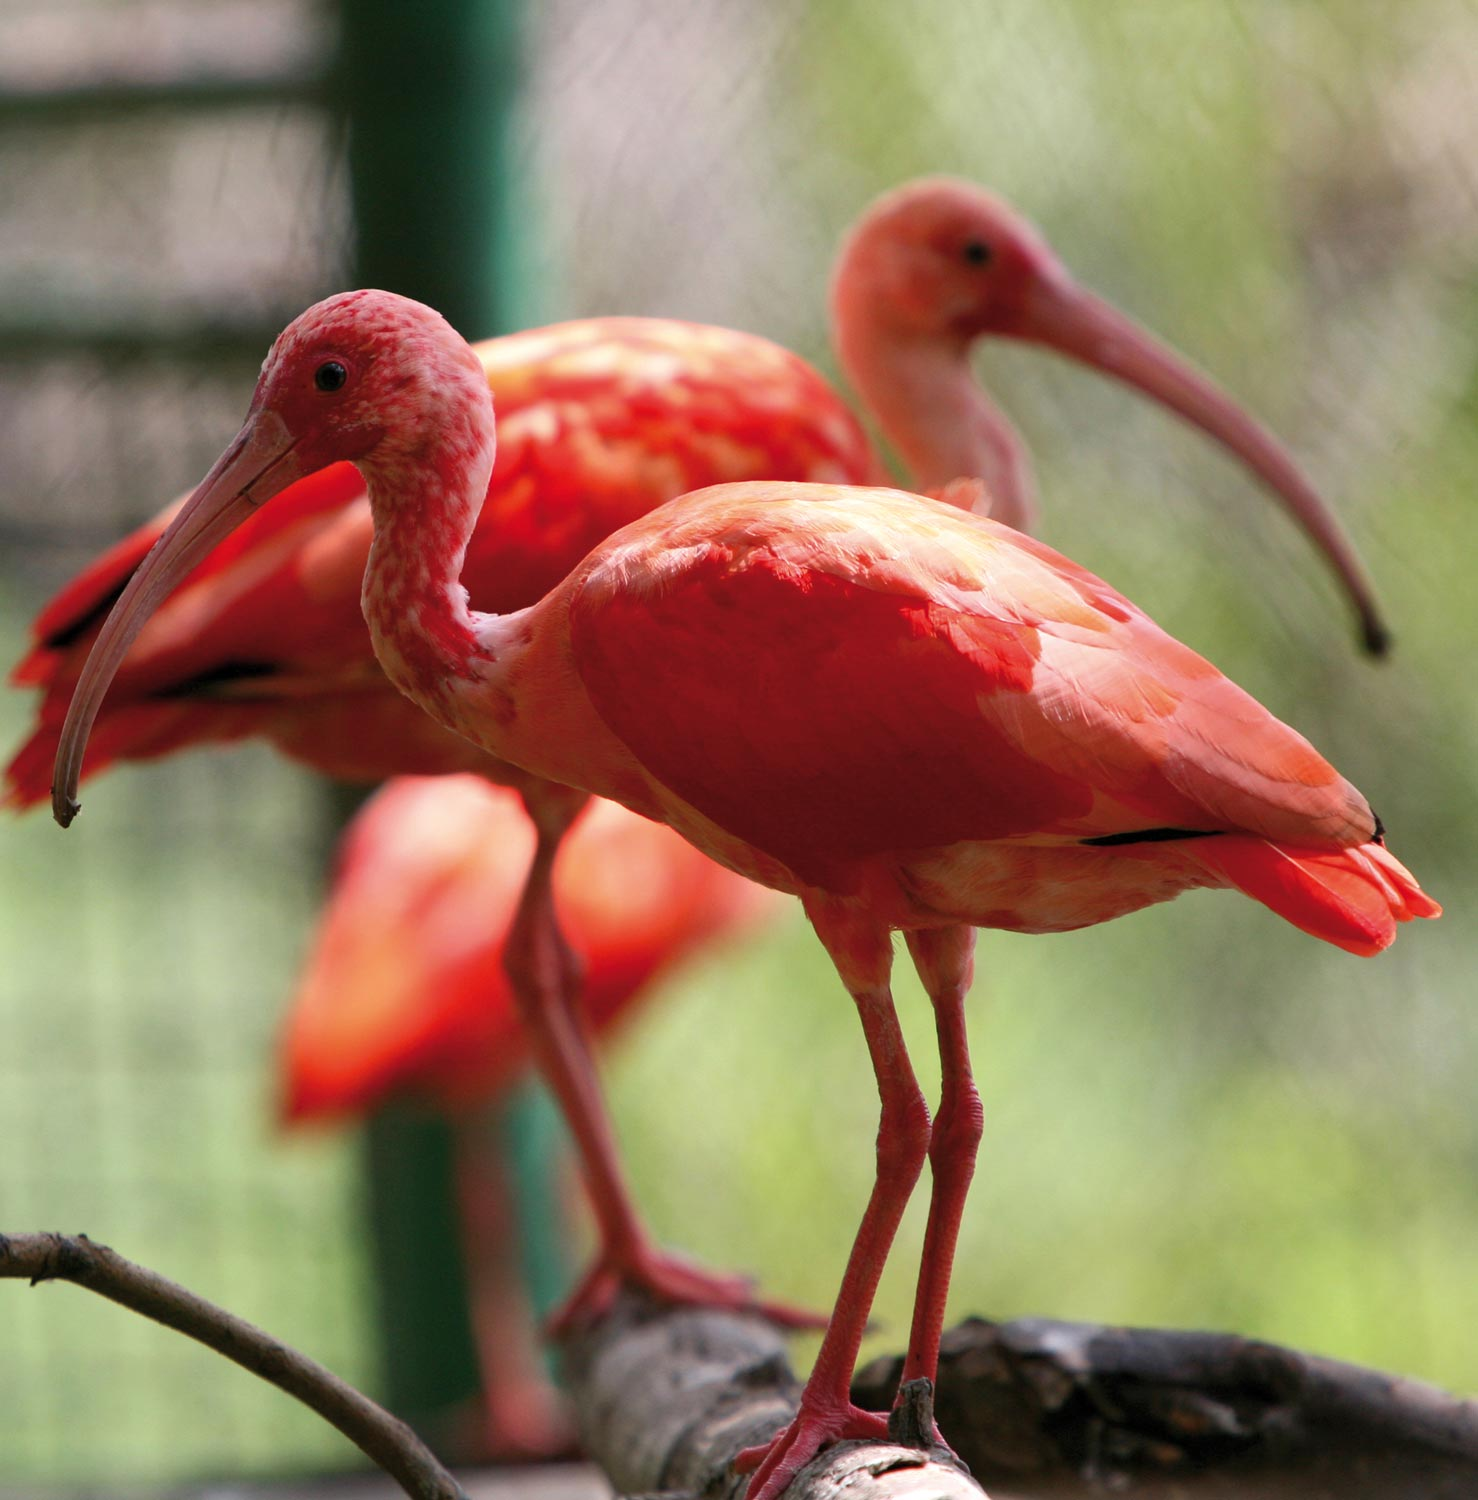 Scarlet ibis keep watch while perched on a rod at the Wild Fowl Trust, Pointe-à-Pierre. Photograph by Andrea De Silva